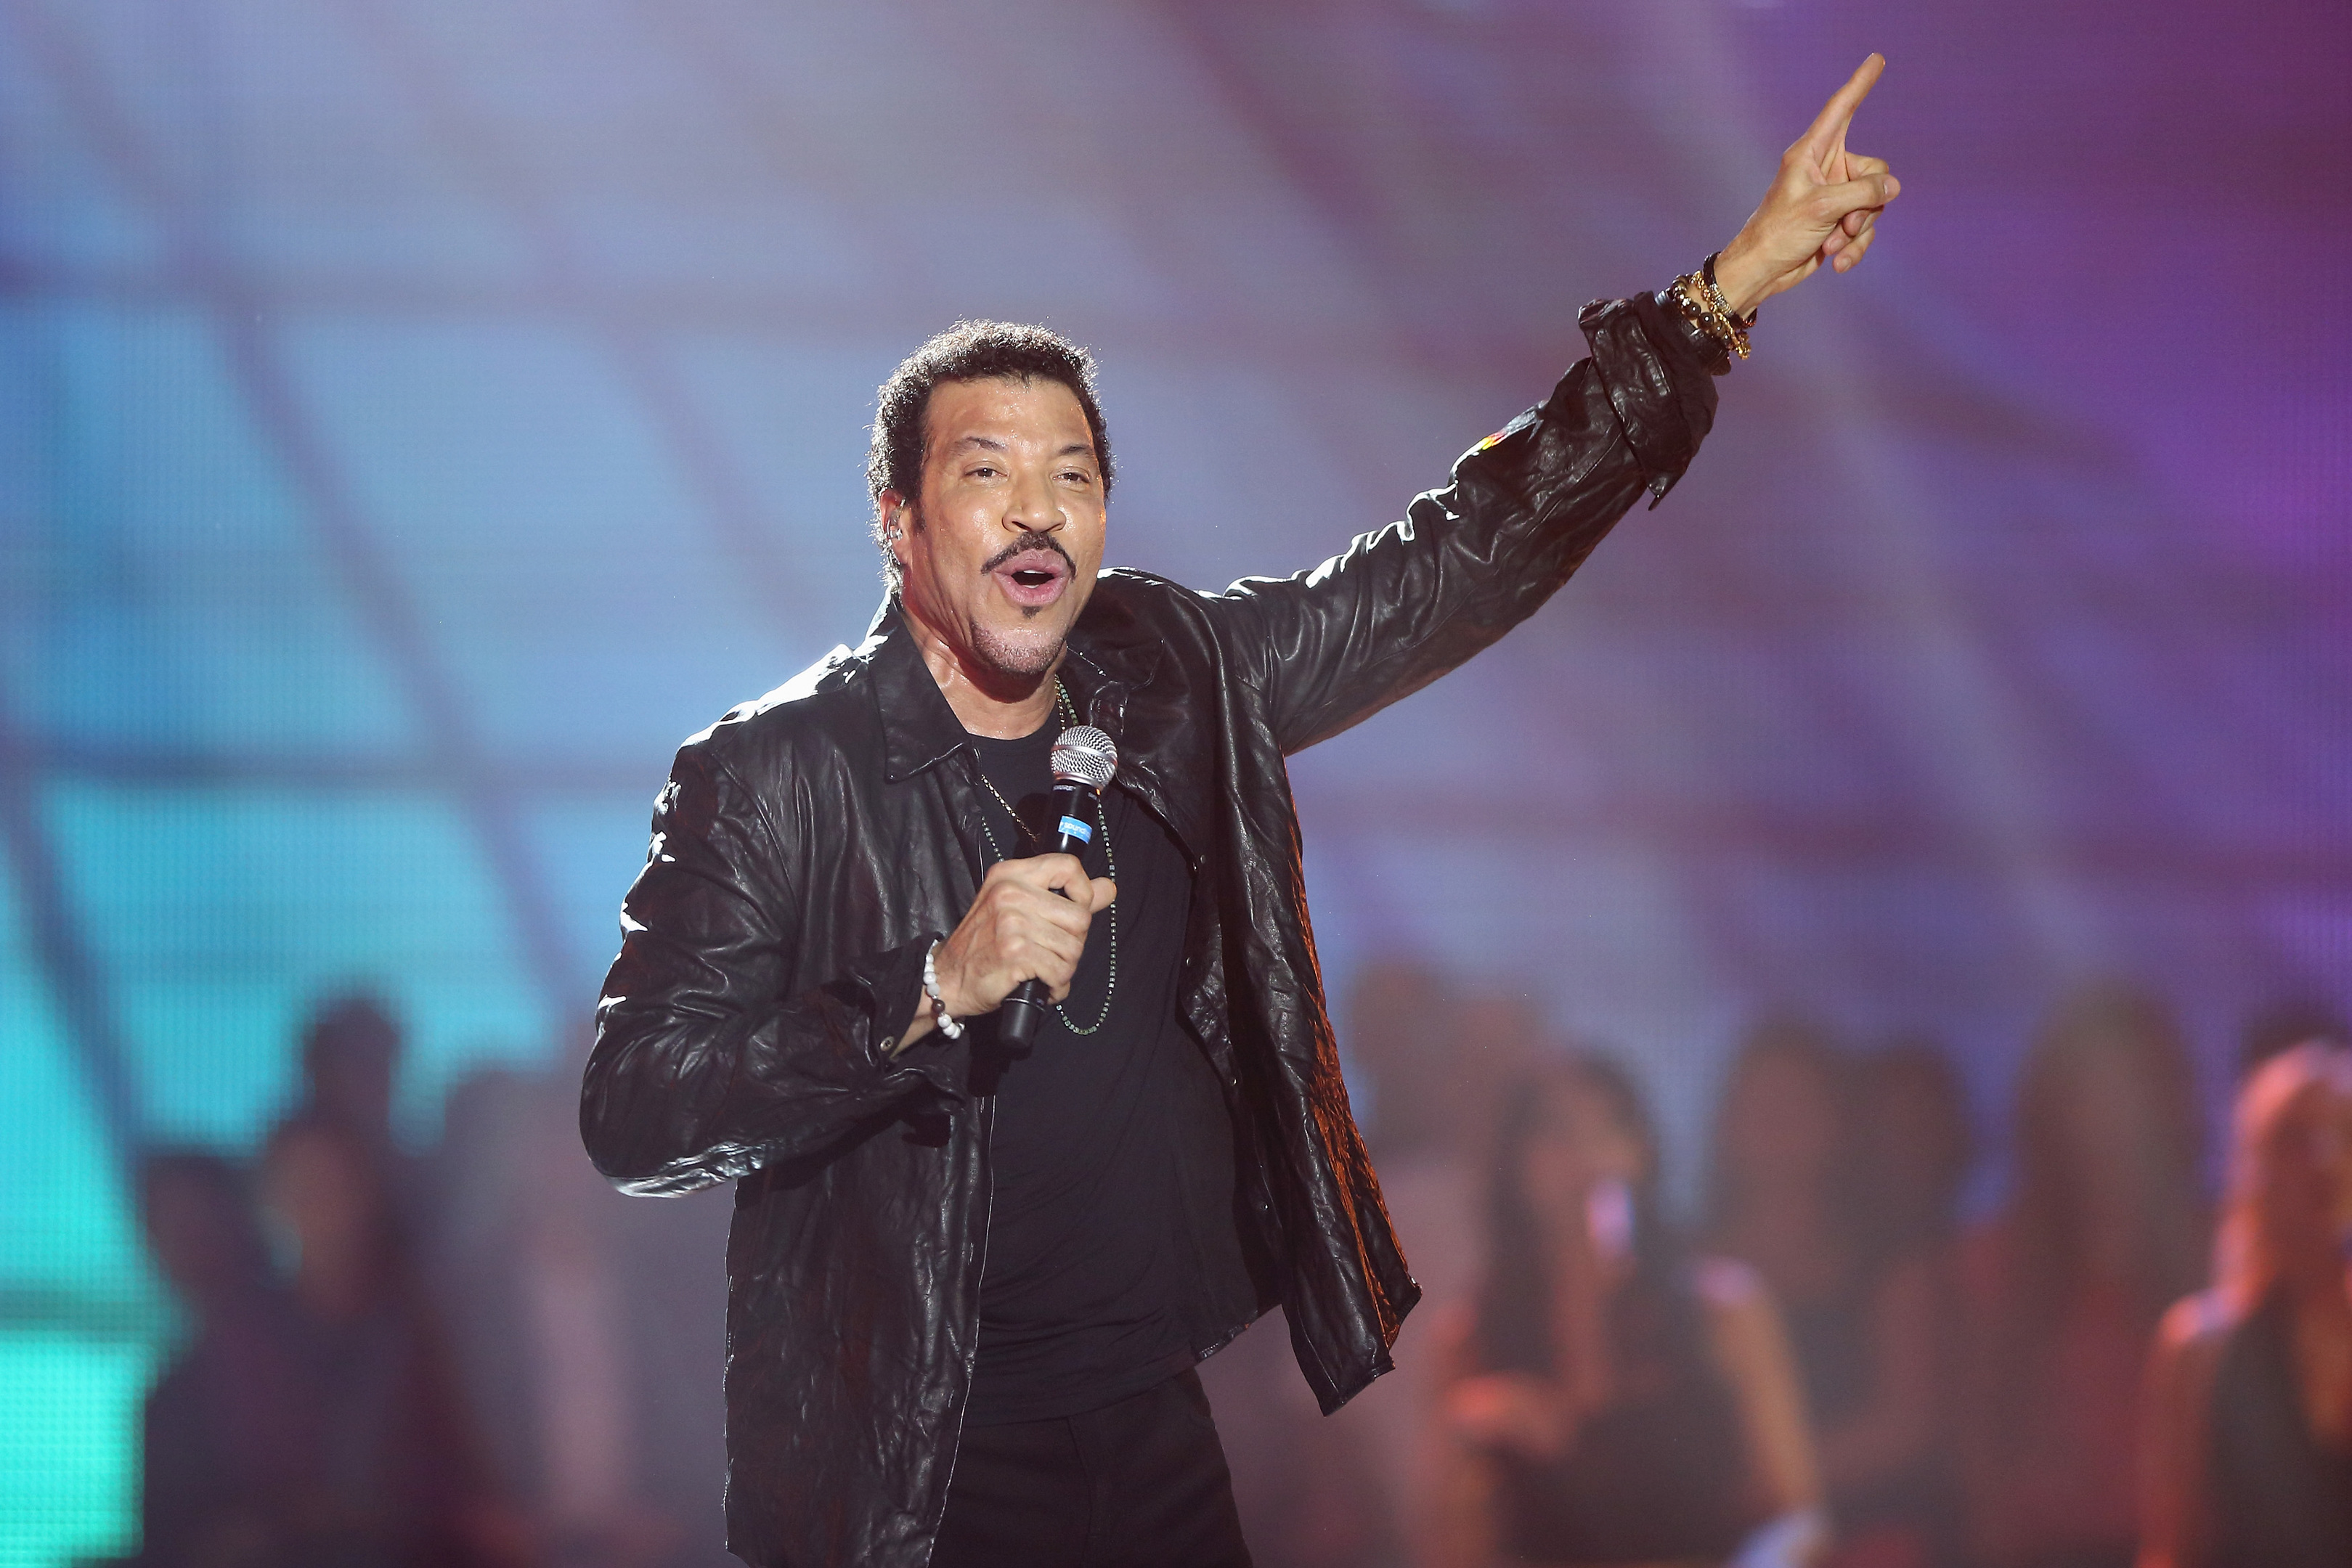 Lionel Richie on stage (Andreas Rentz/Getty Images)